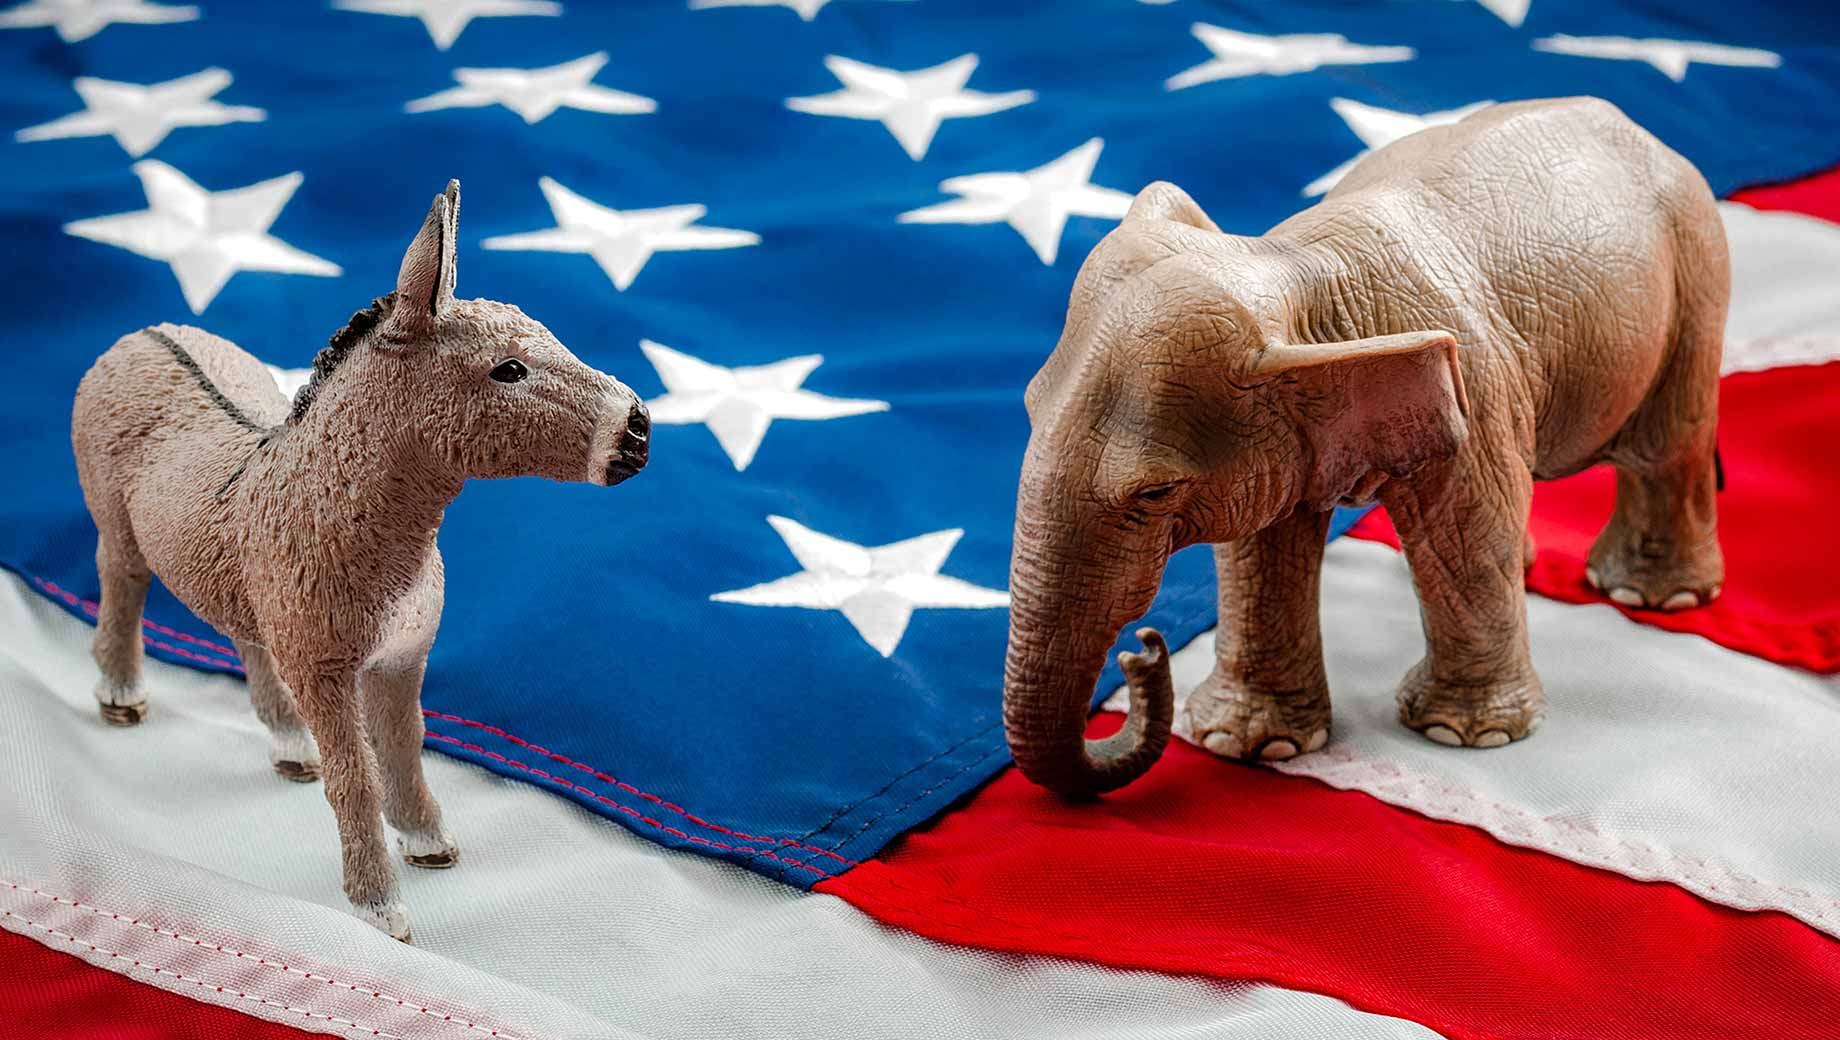 Gallup: Democrats Viewed as Party Better Able to Handle Top Problems